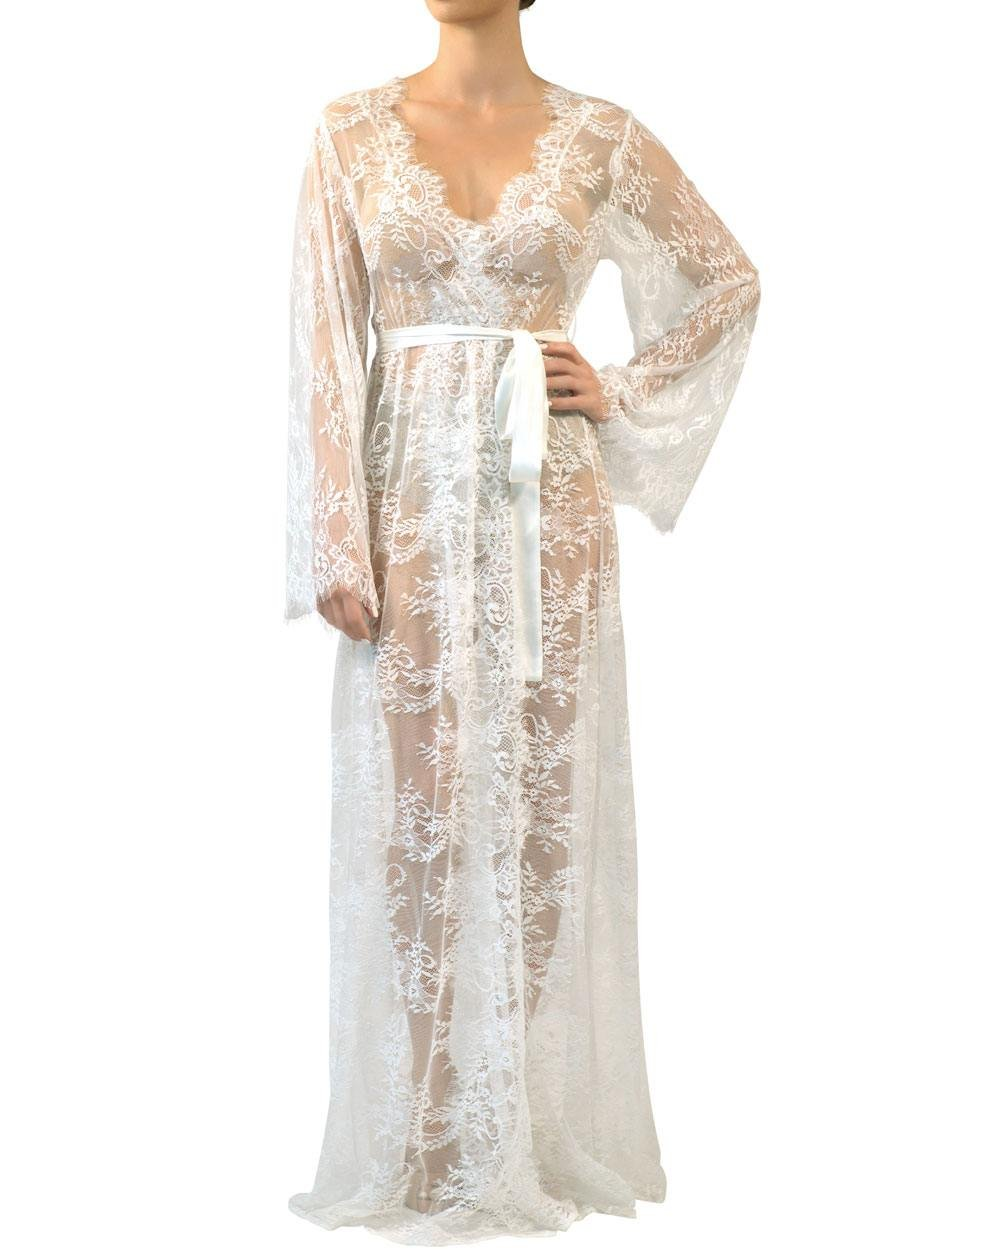 Nudwear Luxury French Eyelash Lace Robe Bridal Robe Honeymoon Kimono (M/L, White - Long)